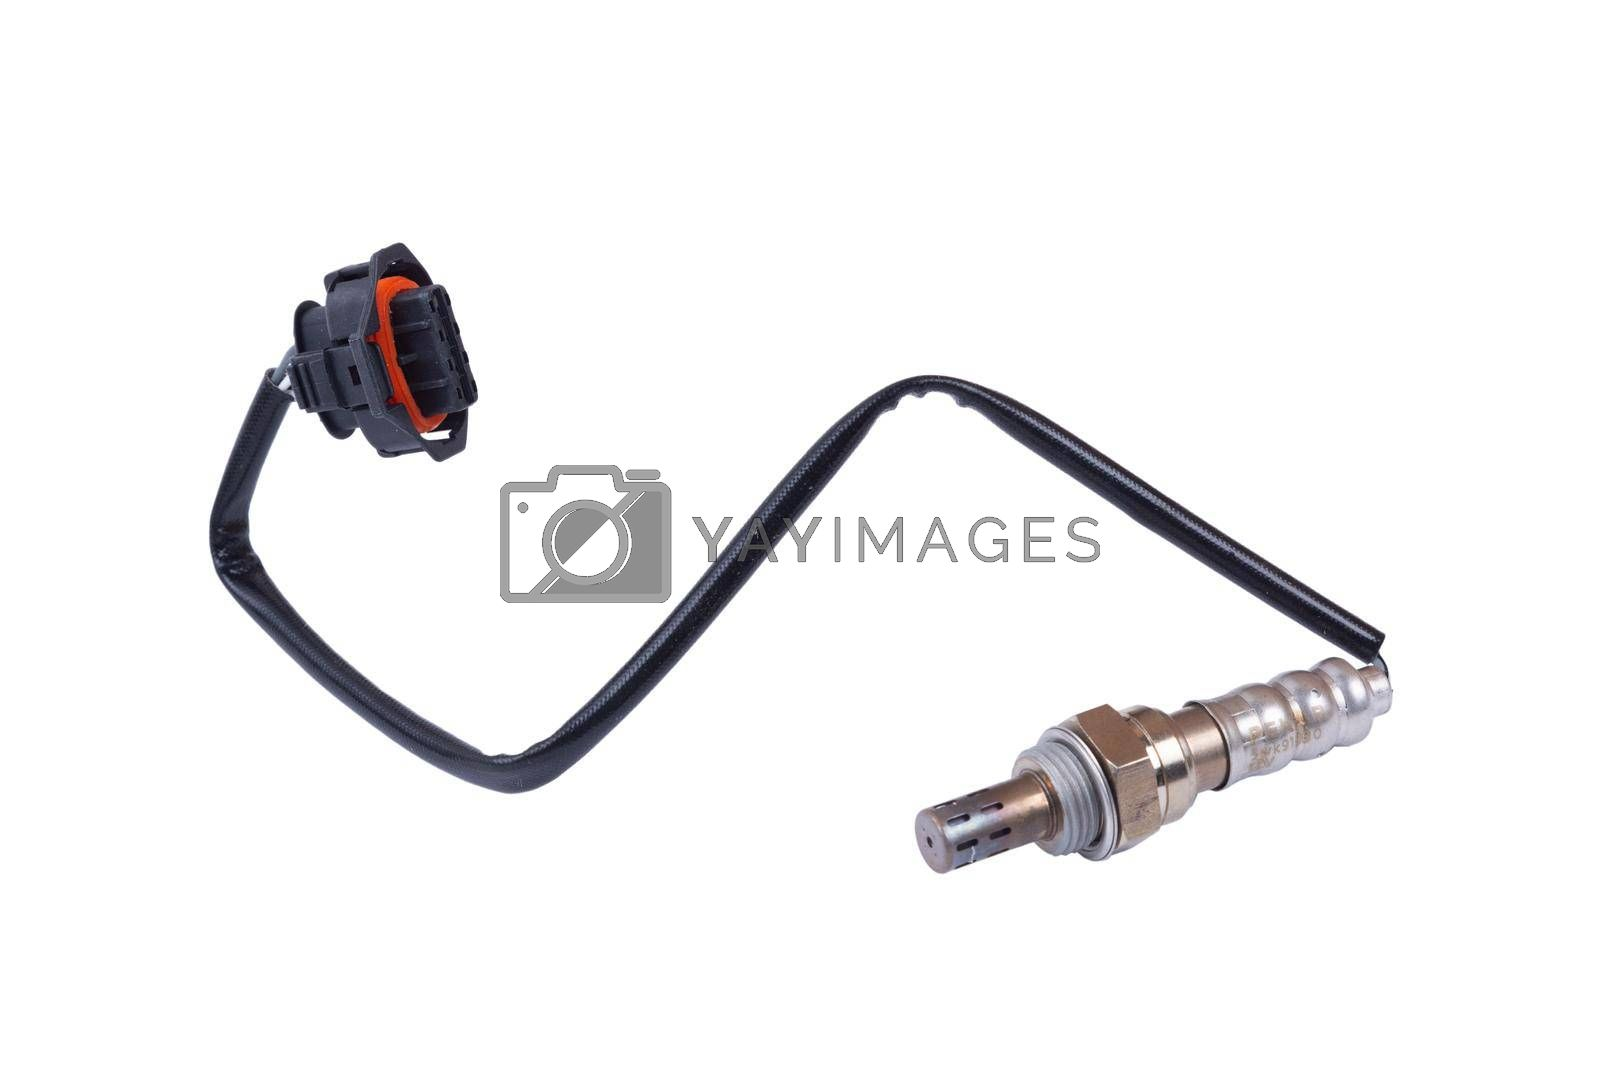 Royalty free image of Details of an Oxygen sensor or lambda sensor by forester